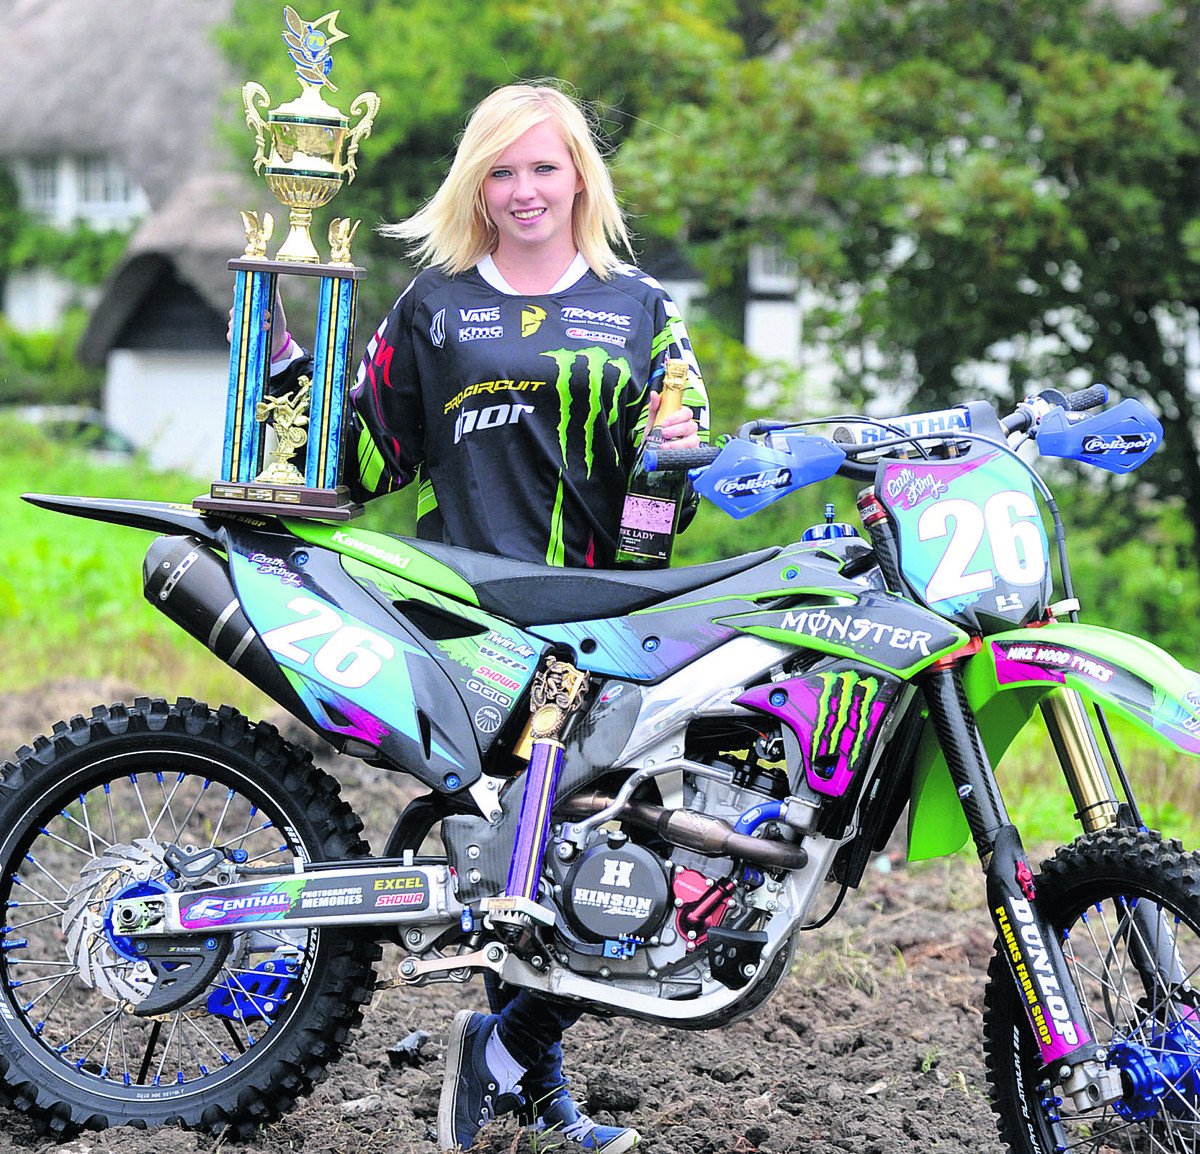 Motocross bike queen catherine unruffled by injury from the